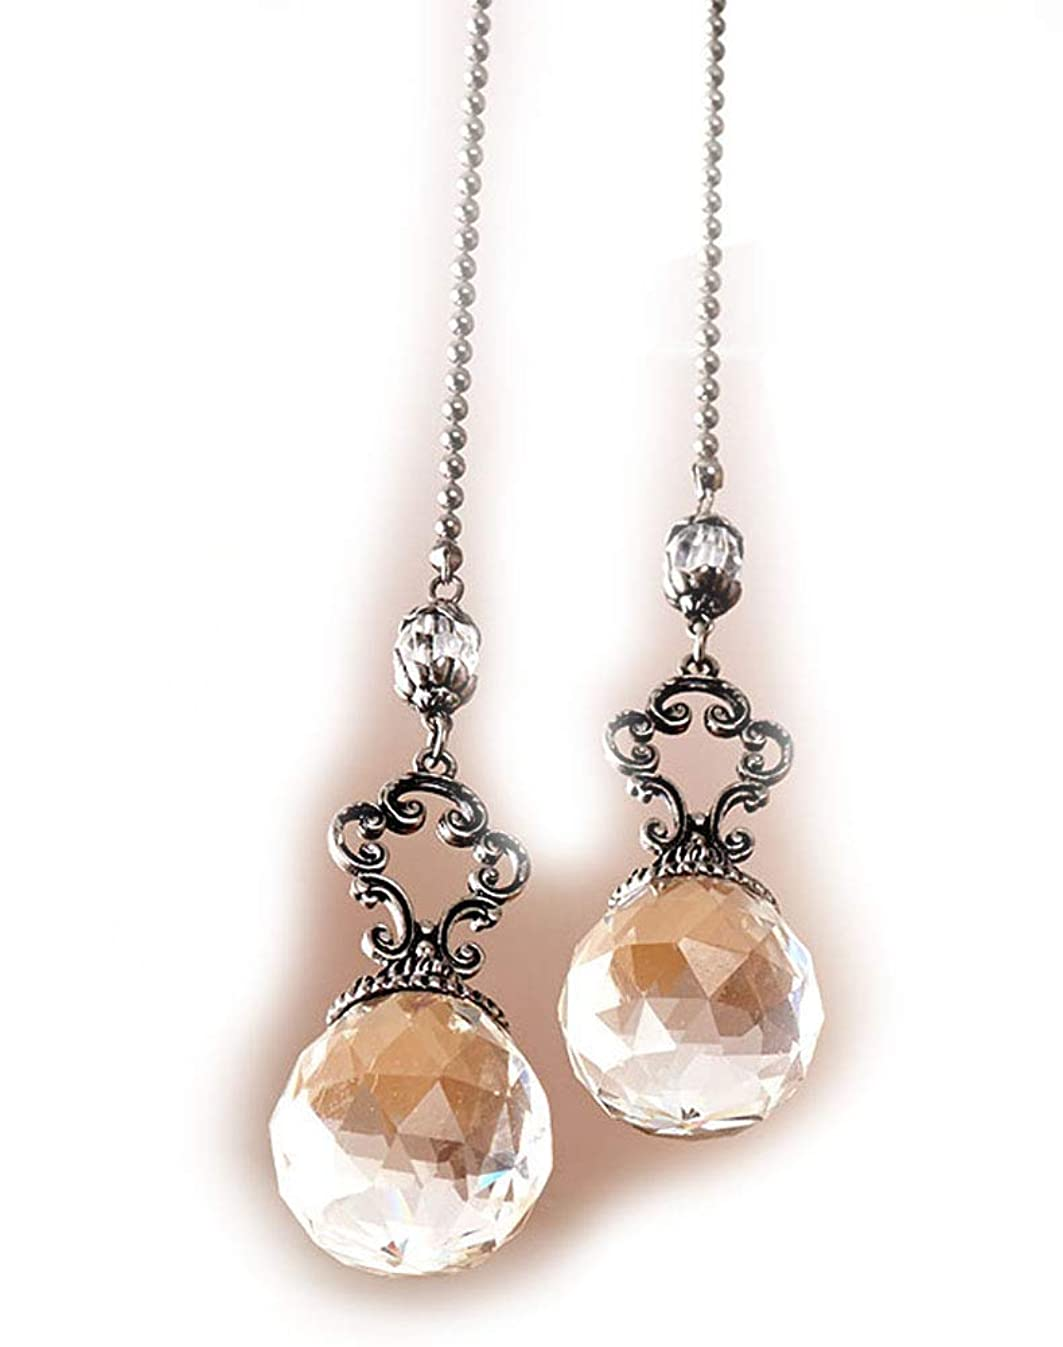 Set of 2 Vintage-Style Jeweled Ceiling Fan Chain Pulls CLEAR Elegant